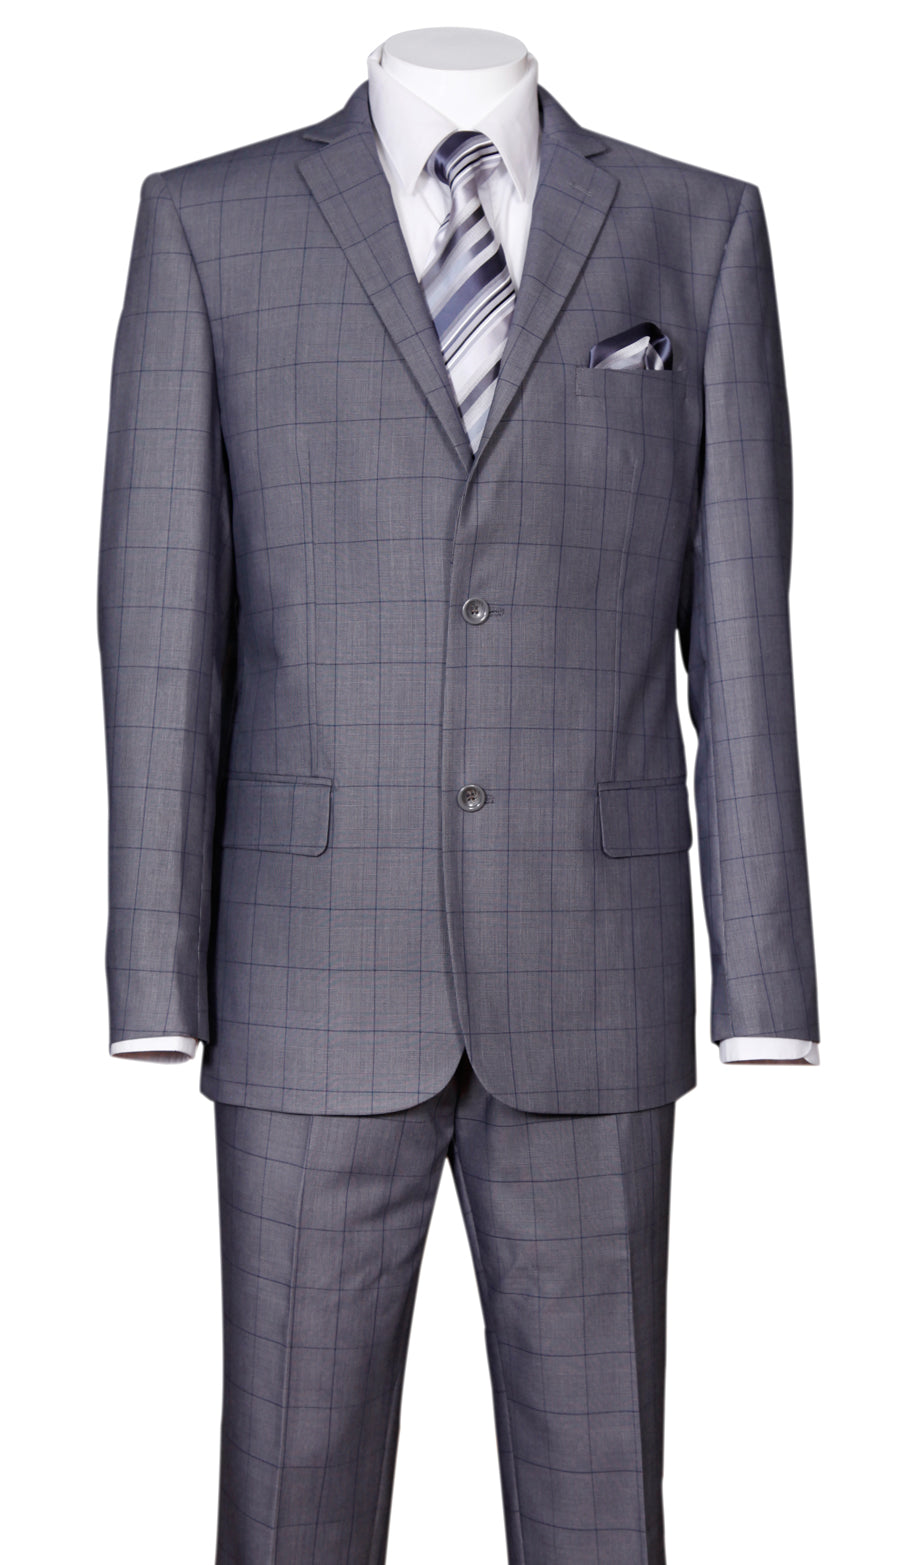 Fortino Landi Men Suit 570203-Grey - Church Suits For Less